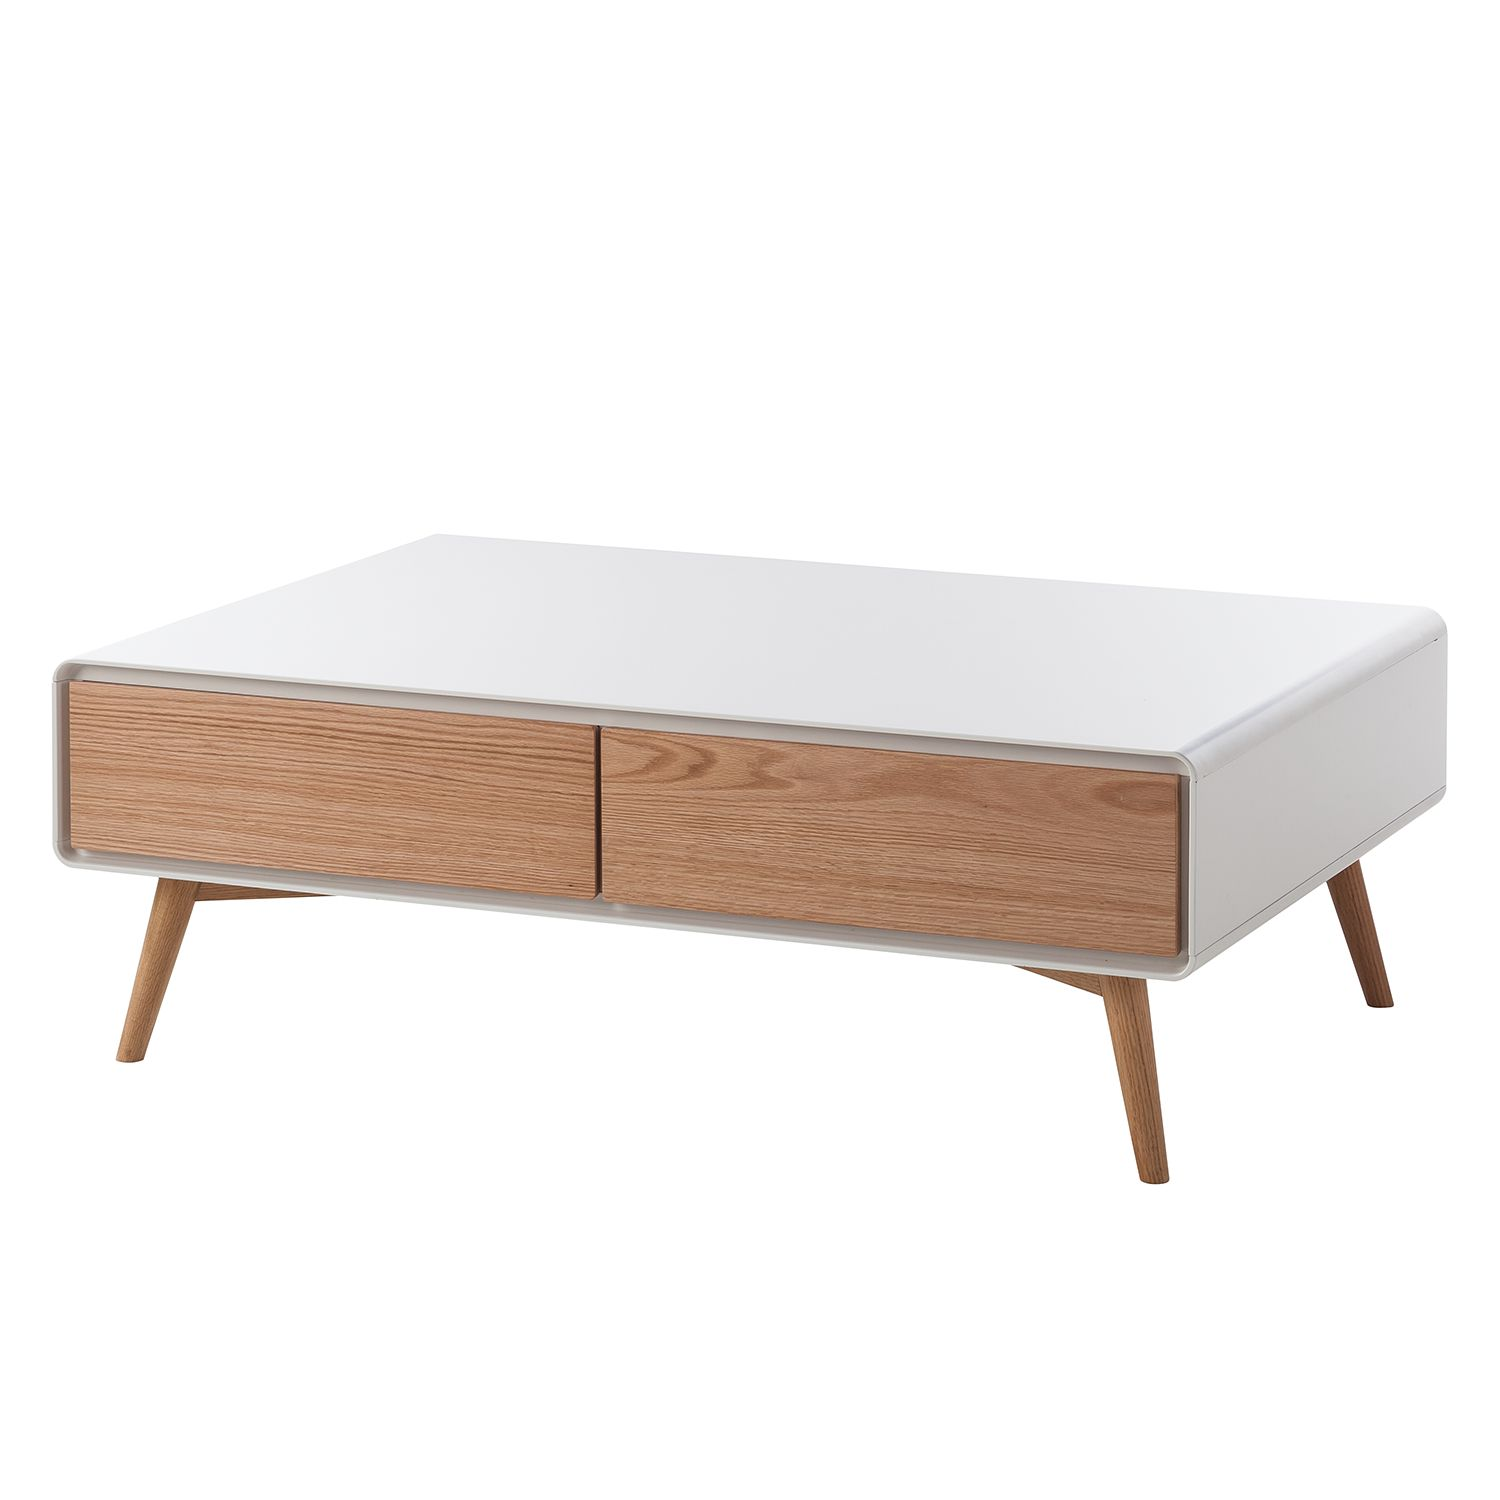 Table basse Lusi - Chêne / Blanc mat, Morteens